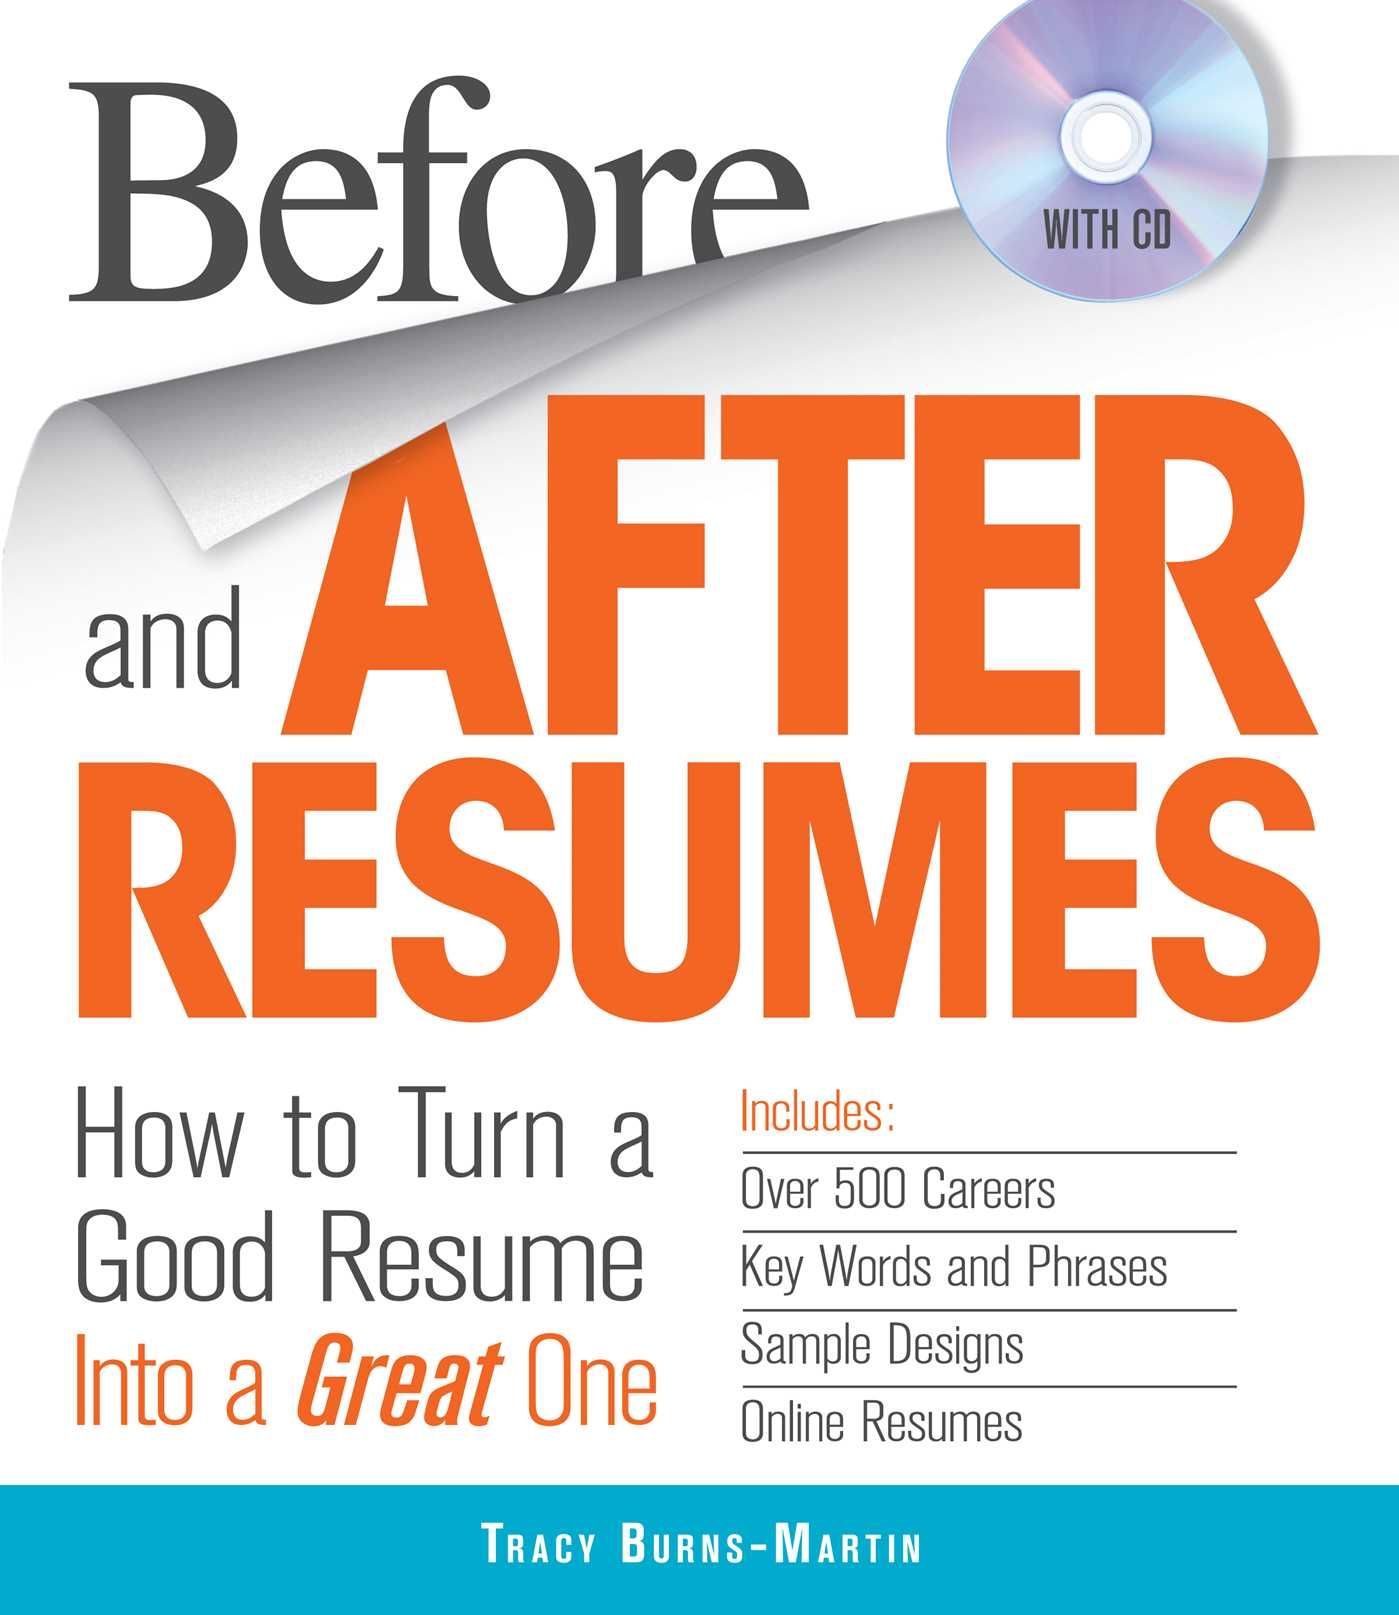 Before and After Resumes with CD | Book by Tracy Burns-Martin ...